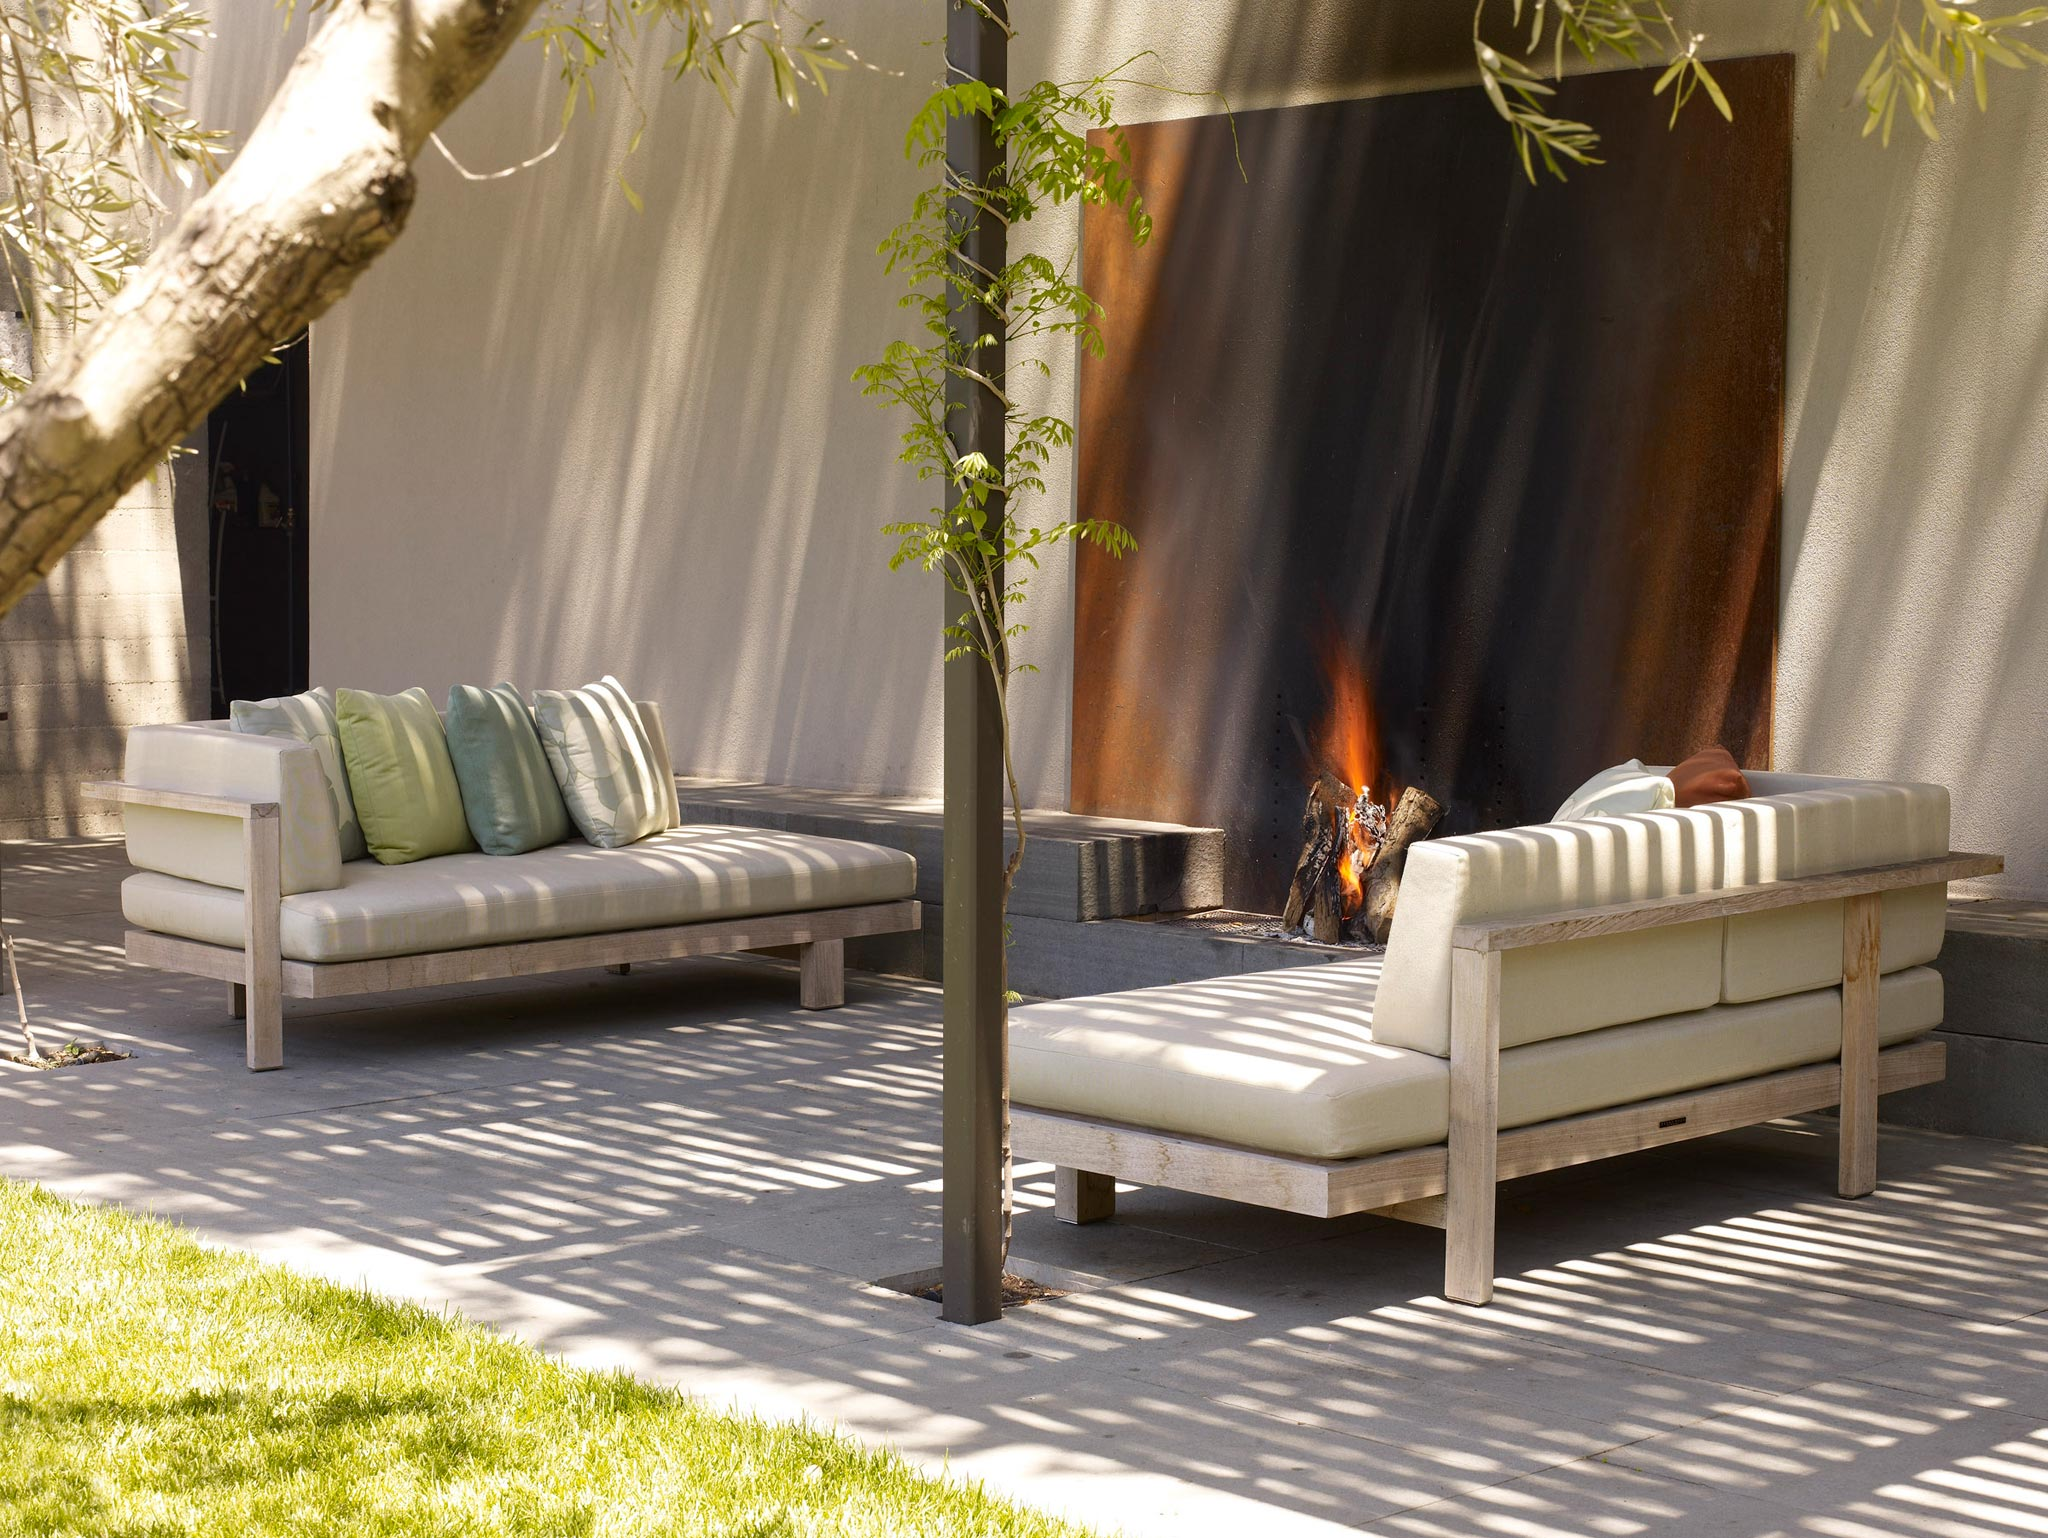 Claremont modern aesthetic pavillon house guest view of outside area